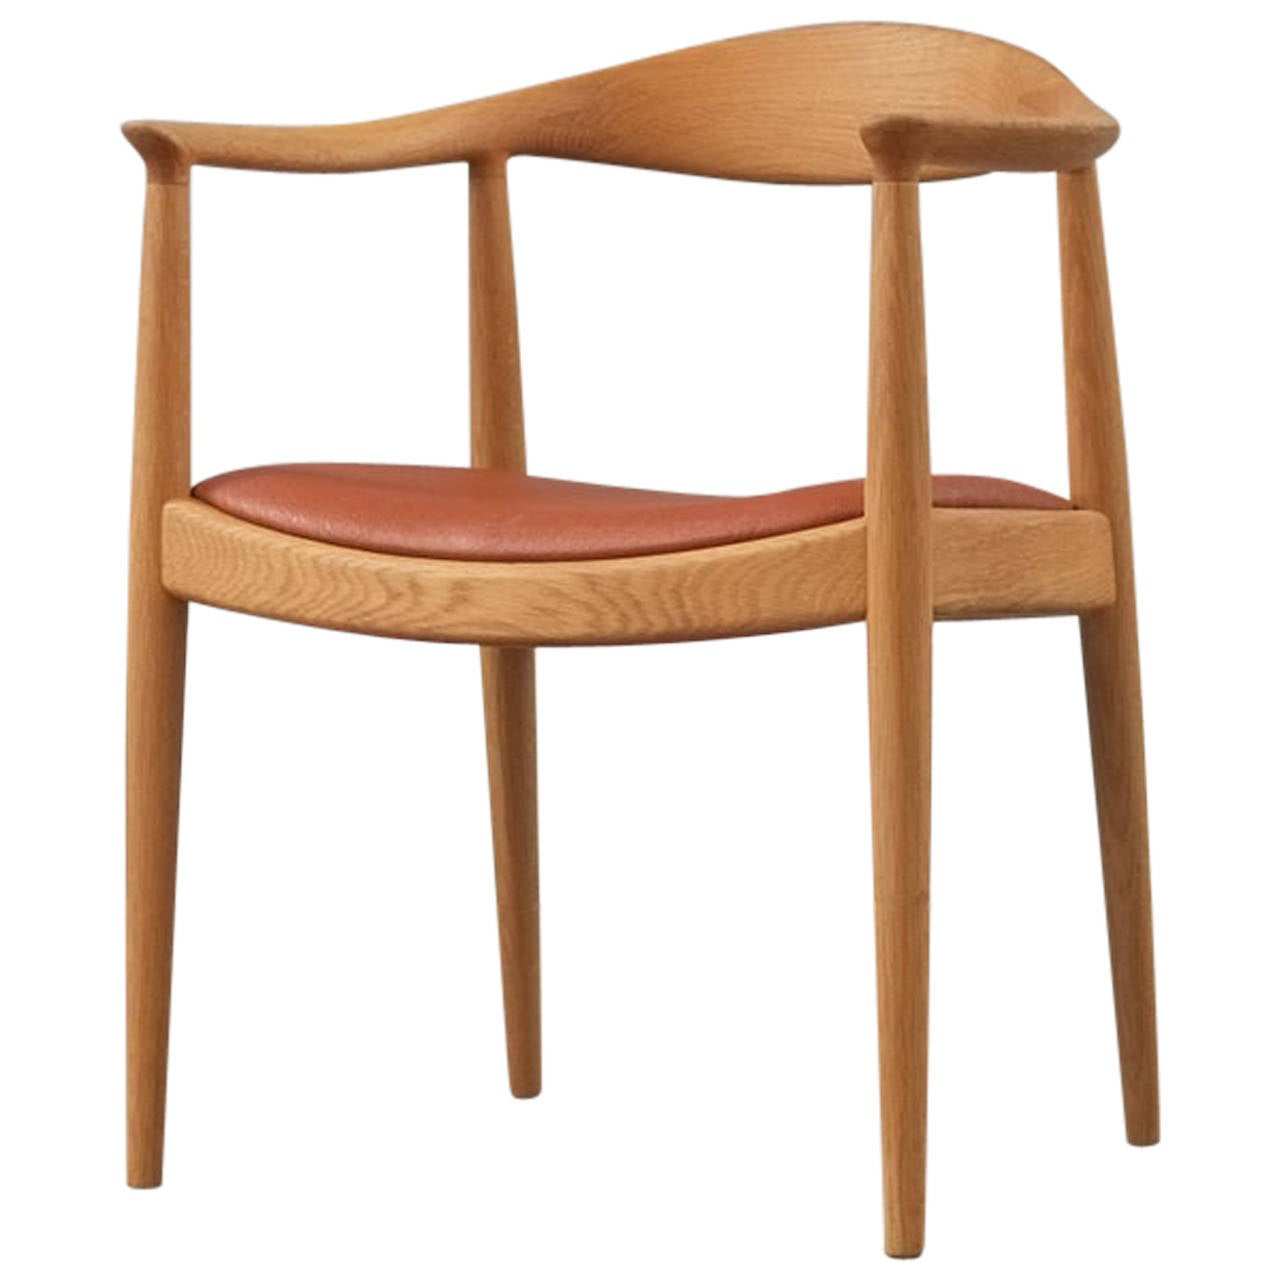 Round Chairs For Sale: Hans Wegner Round Chair At 1stdibs